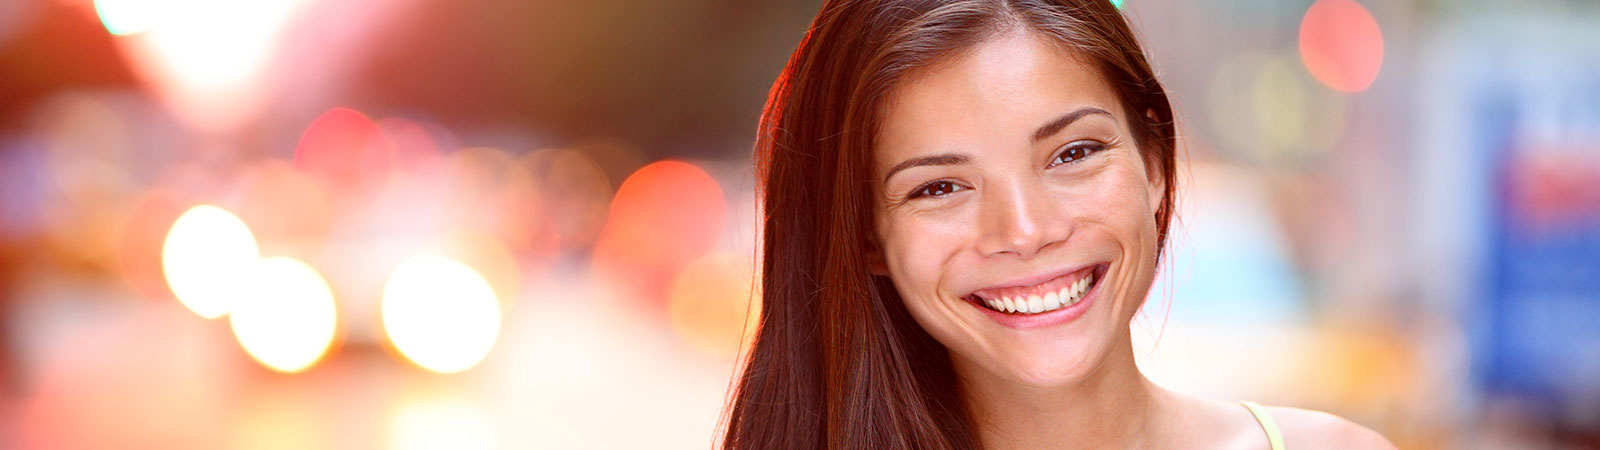 woman with a beautiful smile looking at the camera